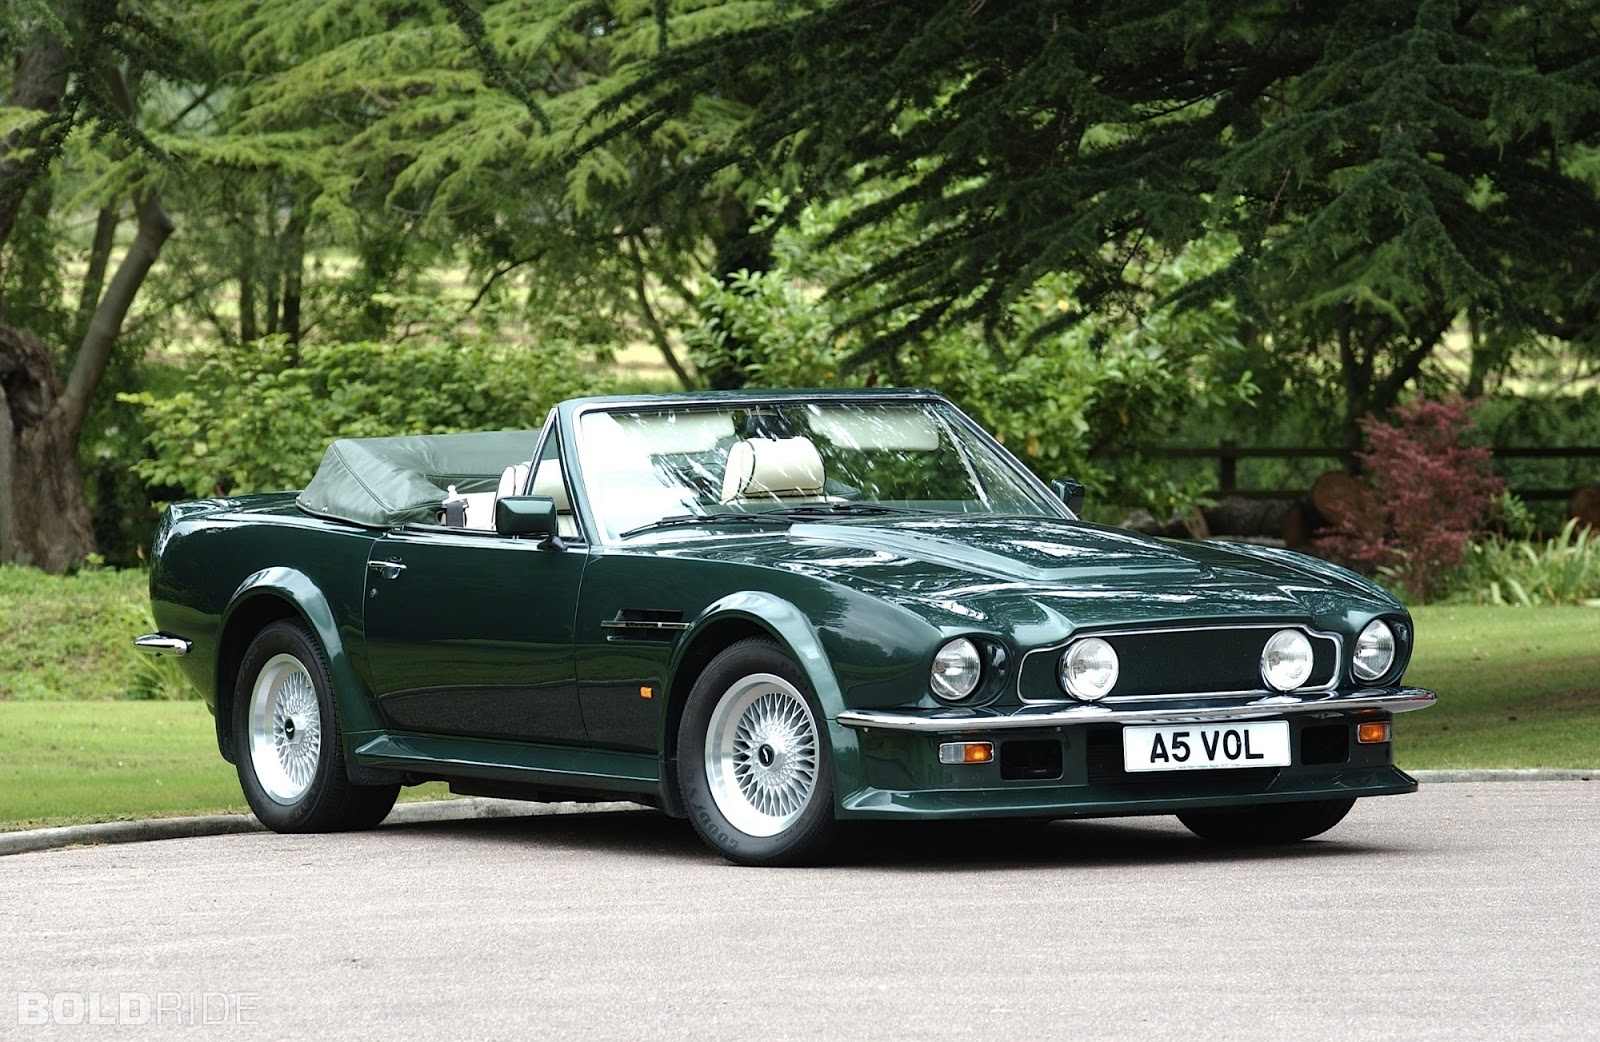 aston martin v8 vantage volante classic takeyoshi images. Black Bedroom Furniture Sets. Home Design Ideas